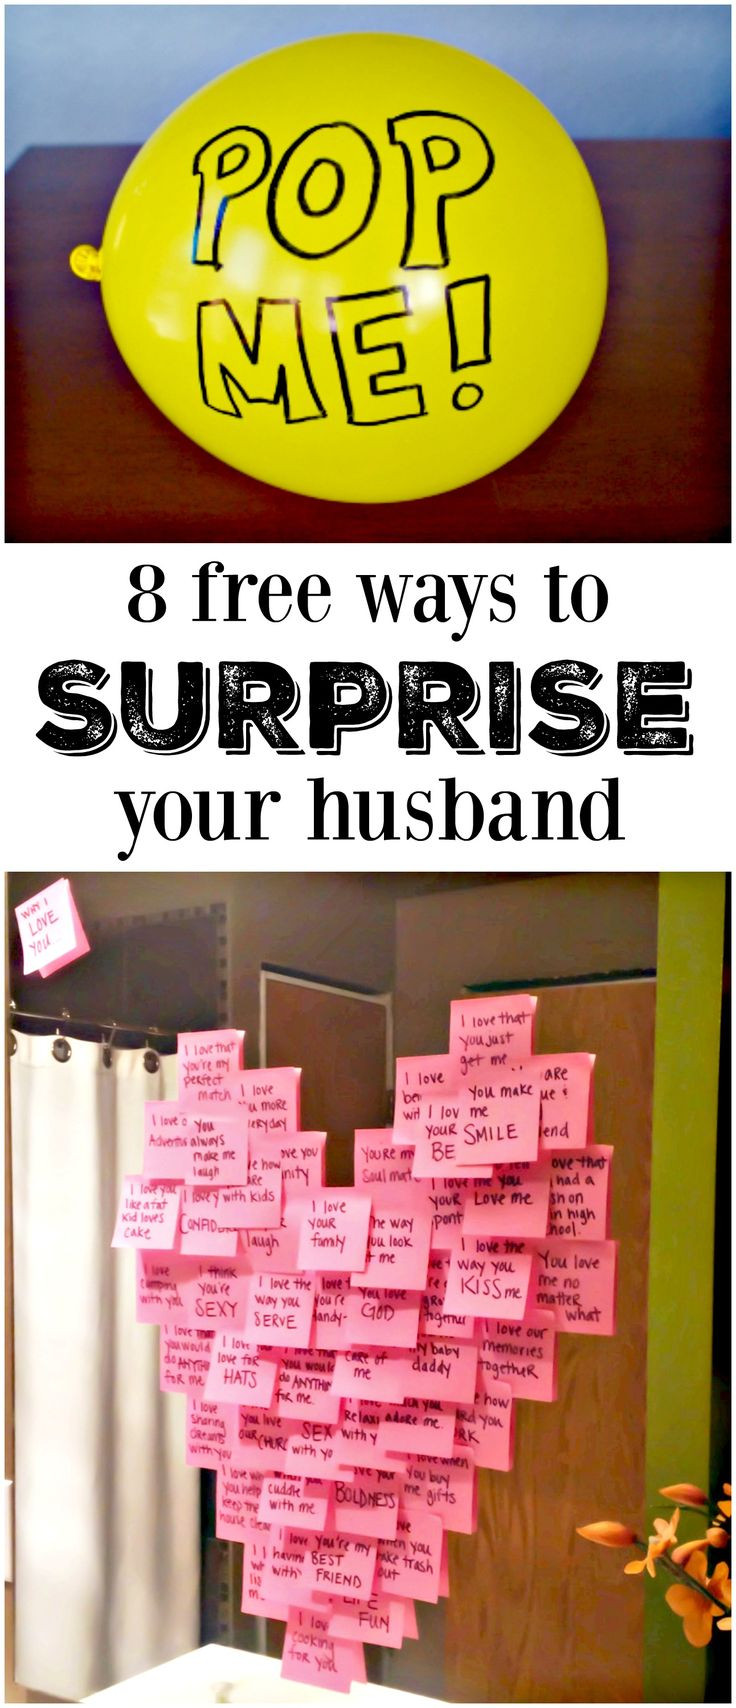 Best ideas about Creative Birthday Ideas For Husband . Save or Pin 25 best ideas about Husband birthday ts on Pinterest Now.